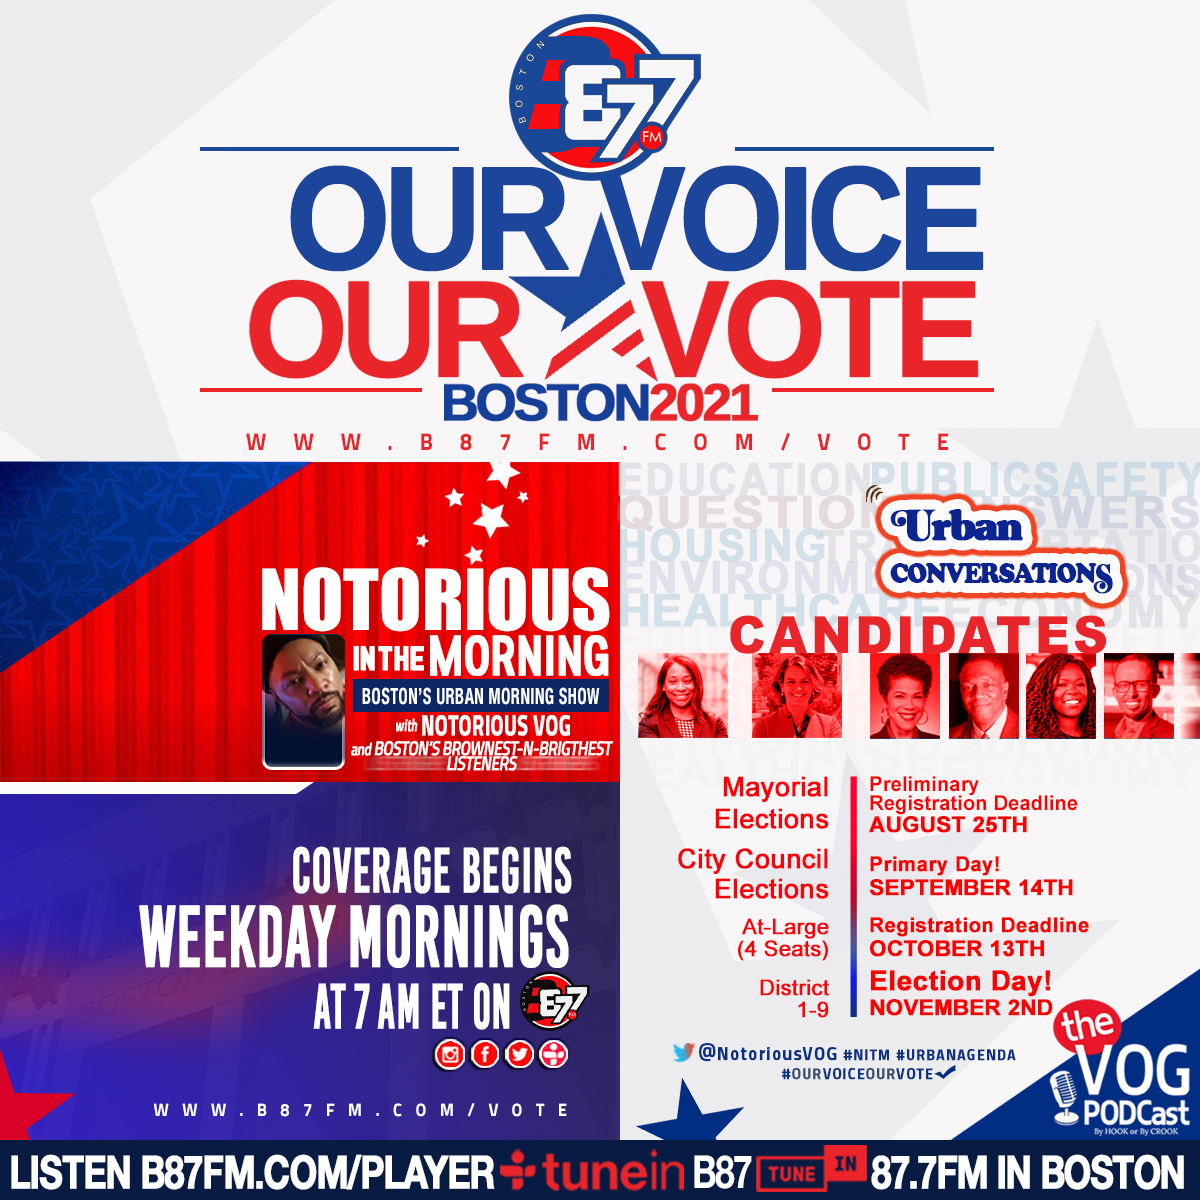 OUR VOICE! OUR VOTE!